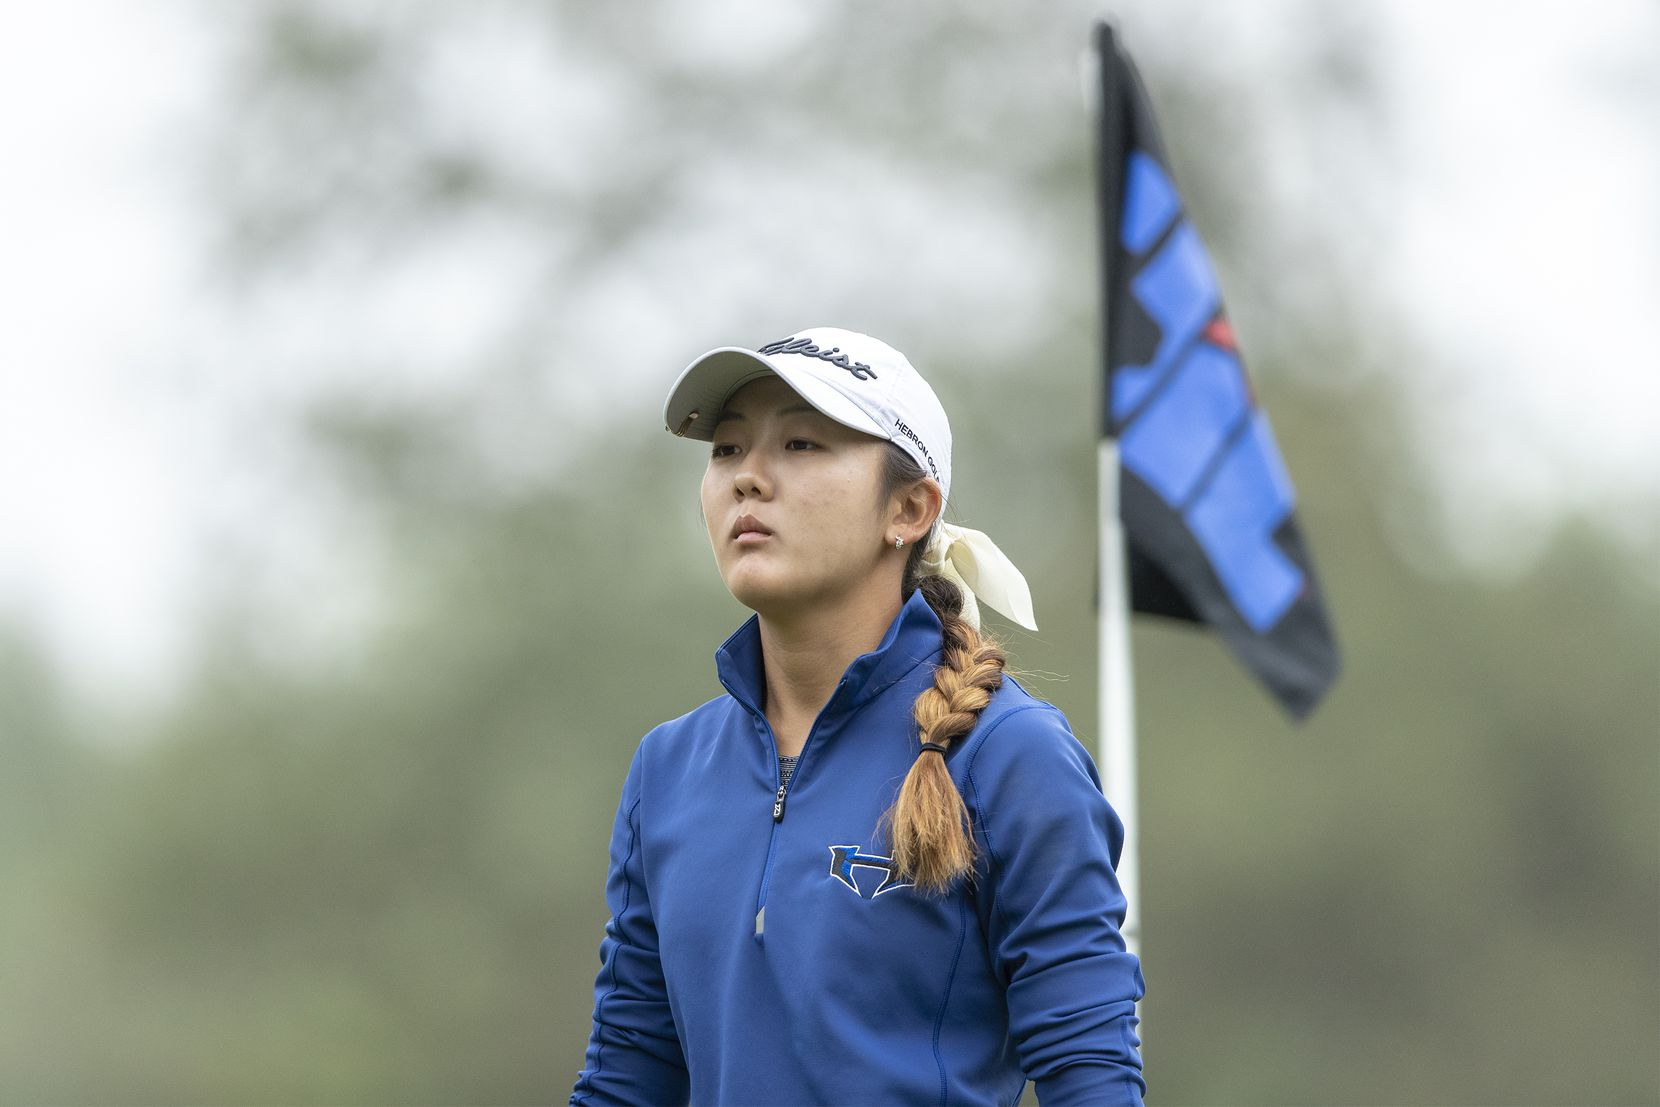 Lewisville Hebron's Estelle Seon exits the 1st green during round 2 of the UIL Class 5A girls golf tournament in Georgetown, Tuesday, May 11, 2021. (Stephen Spillman/Special Contributor)